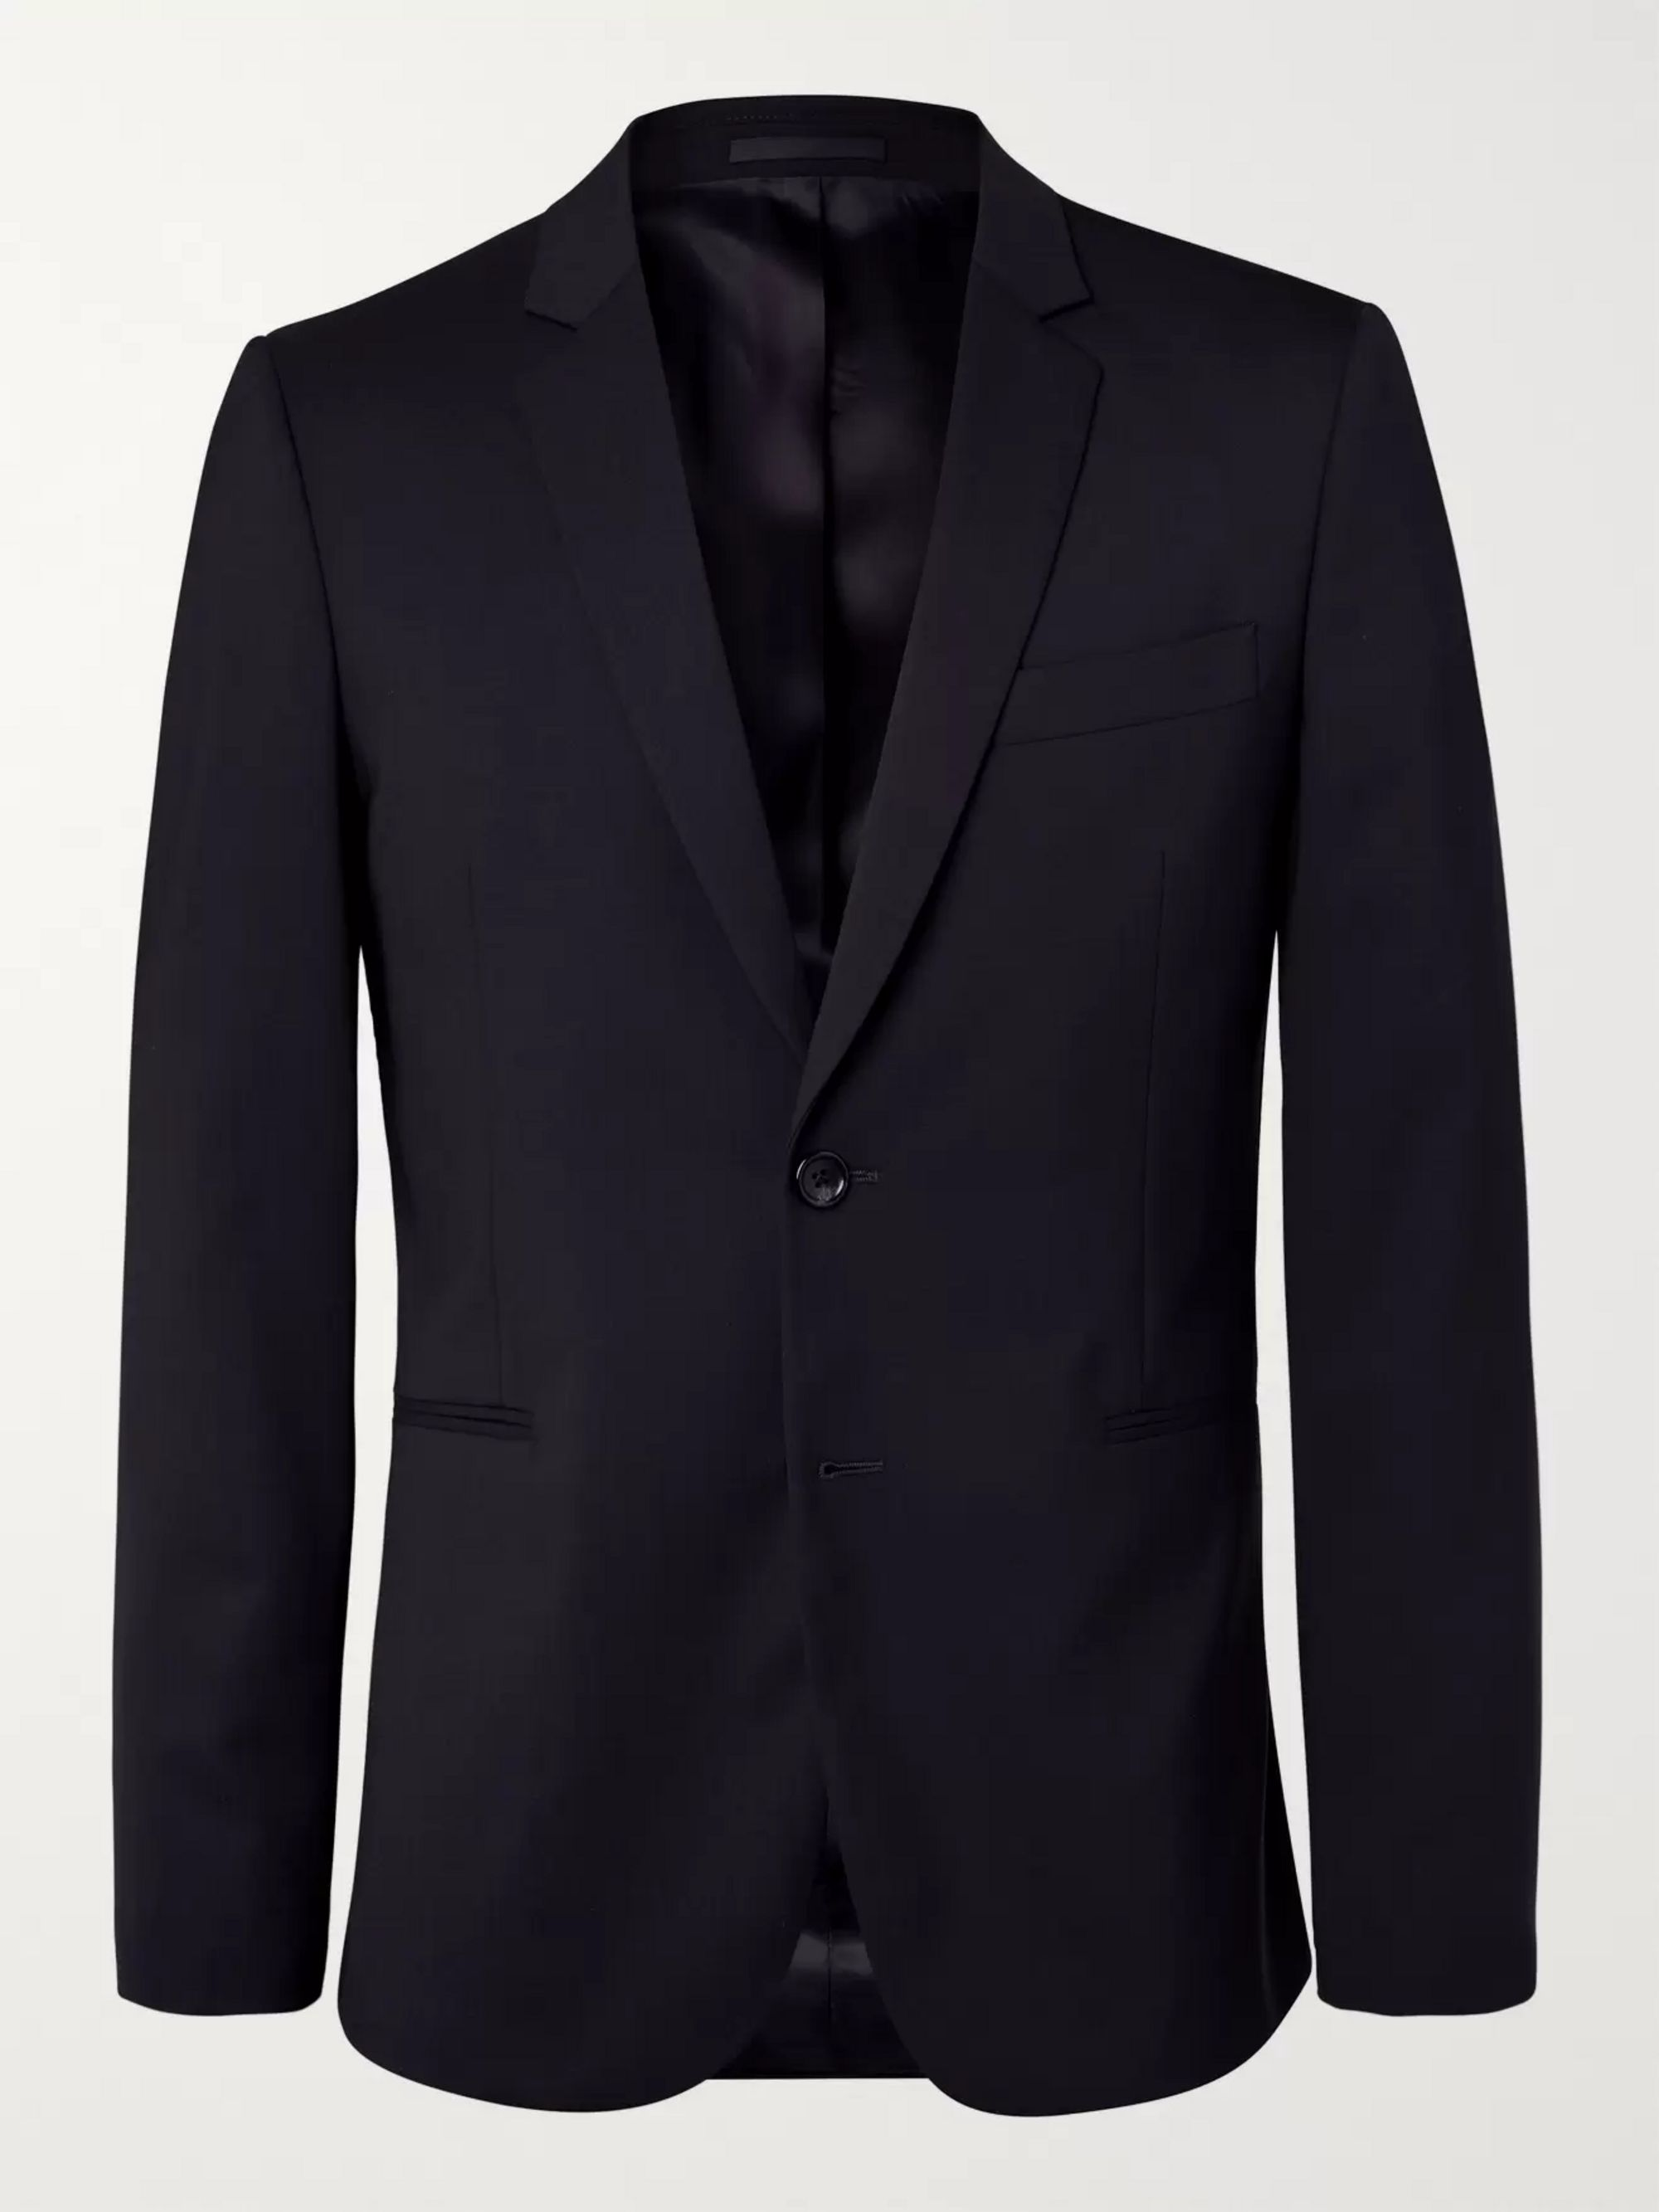 Navy Slim Fit Unstructured Stretch Wool Blazer by Ps Paul Smith